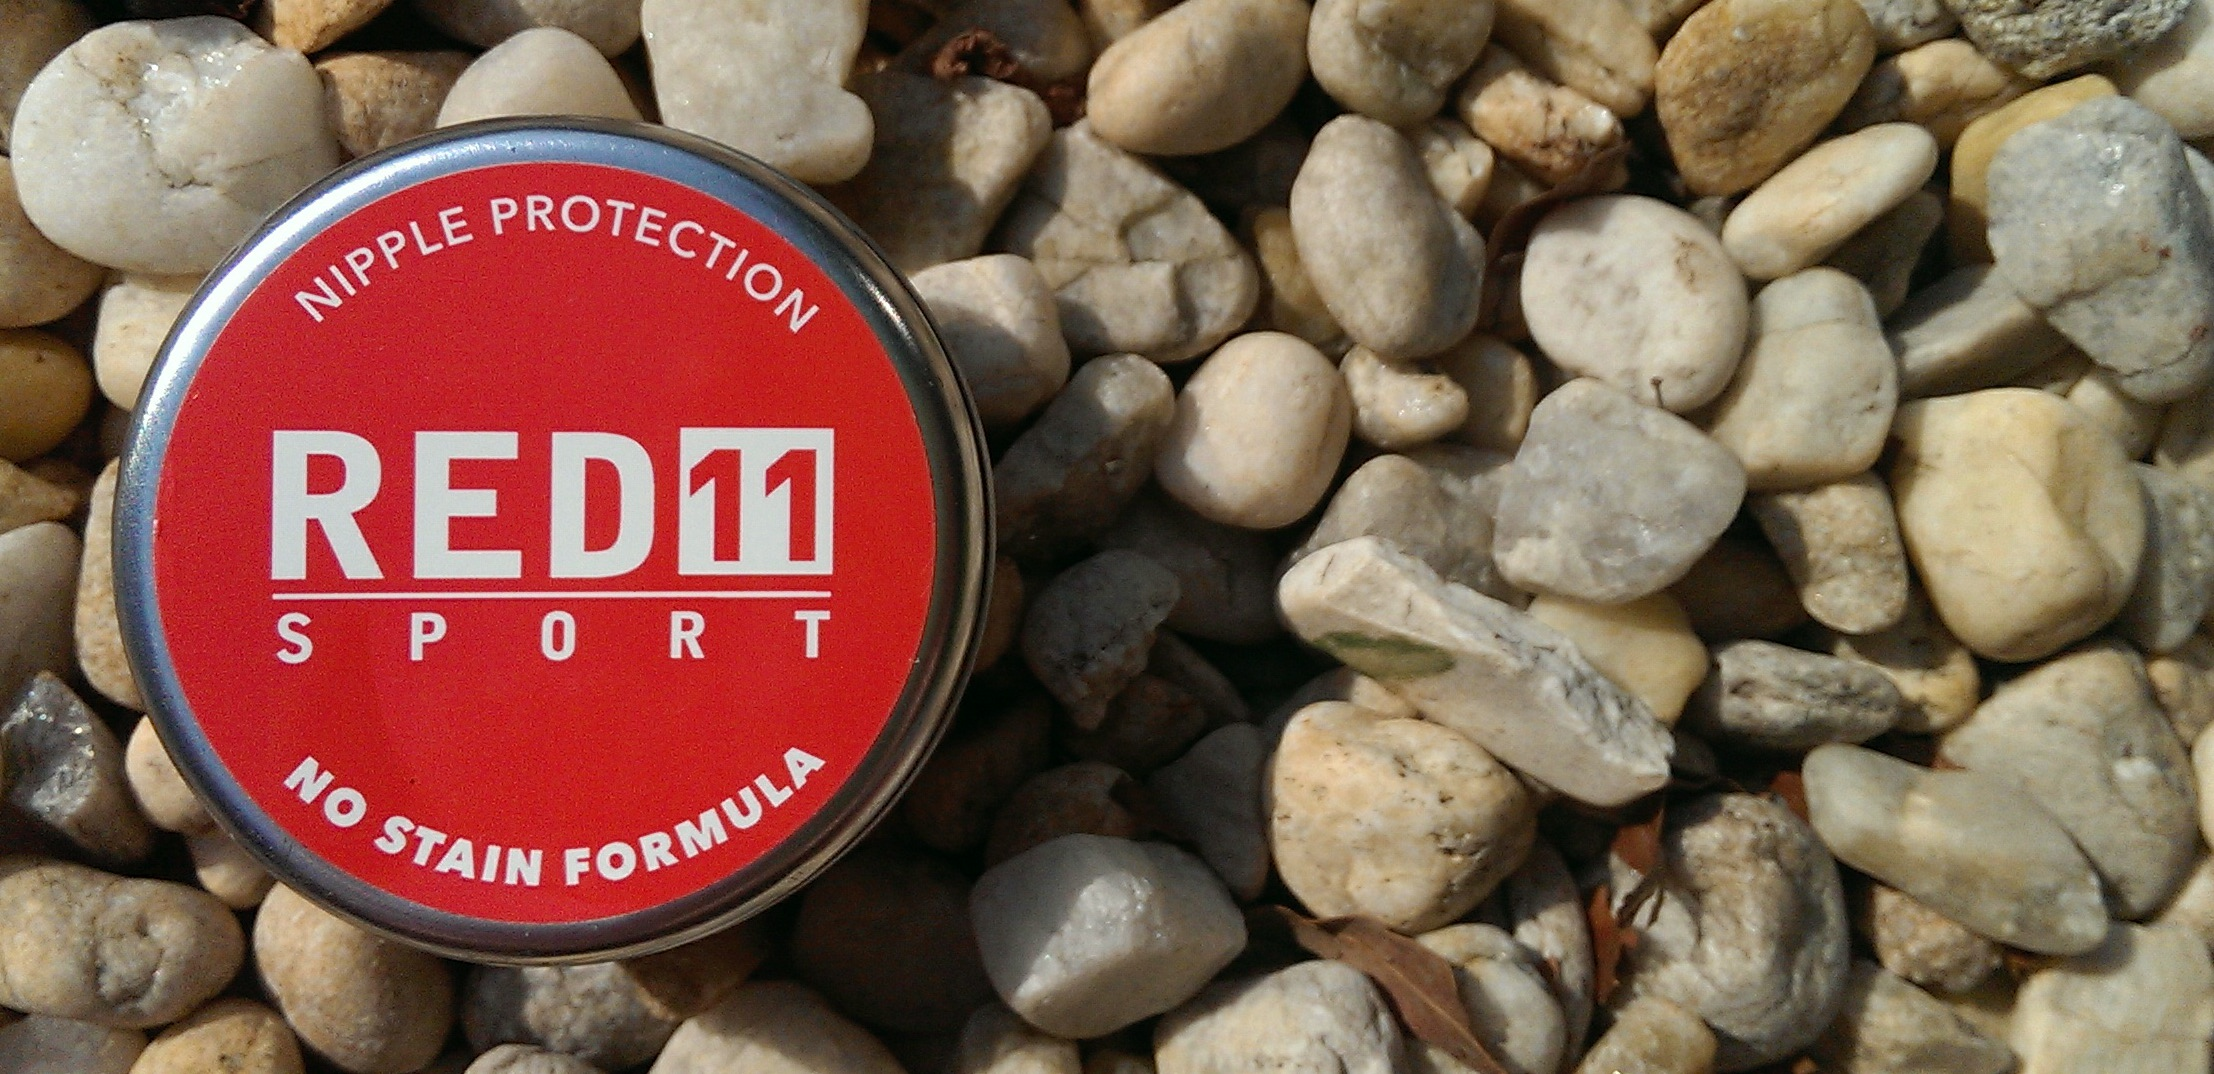 Save the nips: Red11 Sport anti-chafe salve review